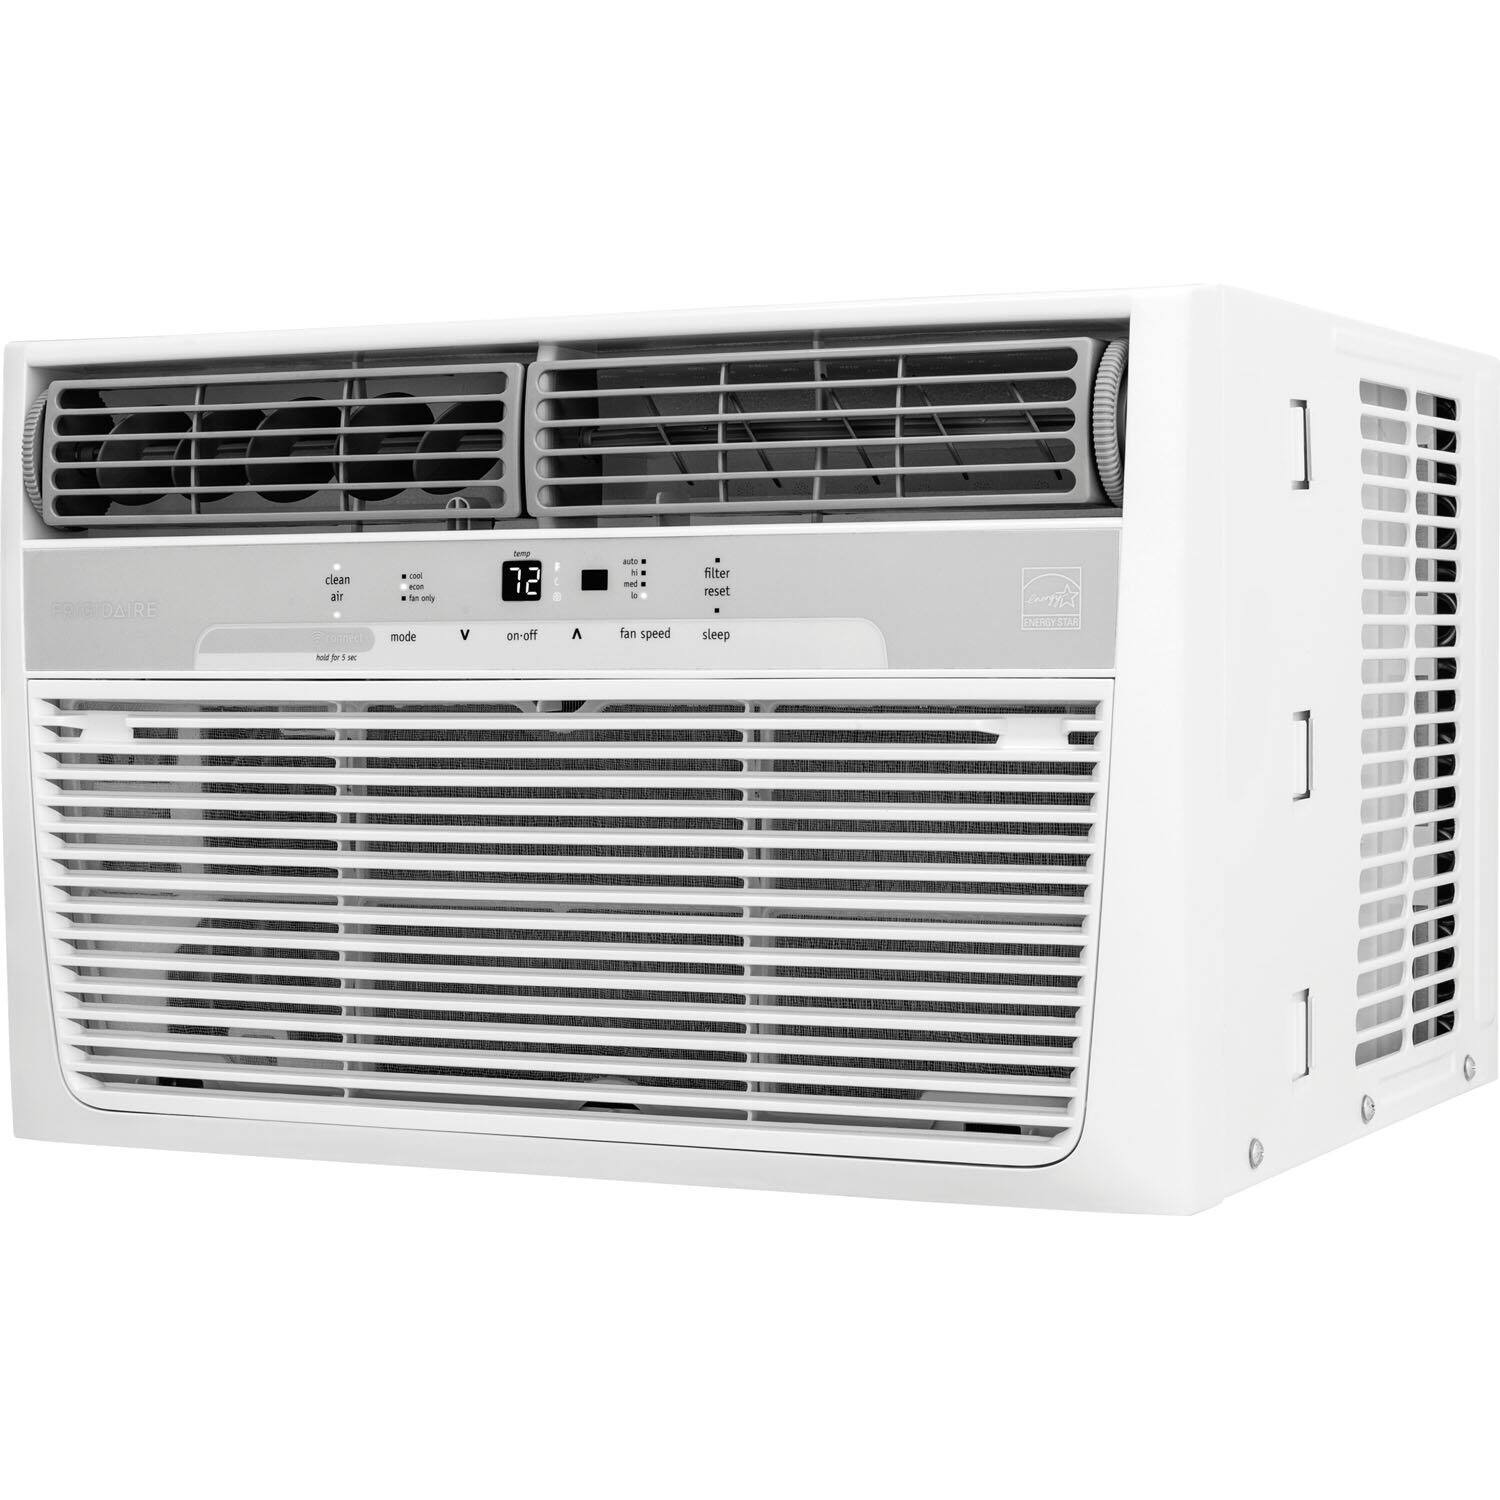 Frigidaire 8000 BTU Smart Window Air Conditioner (white)  $200 + Free Shipping